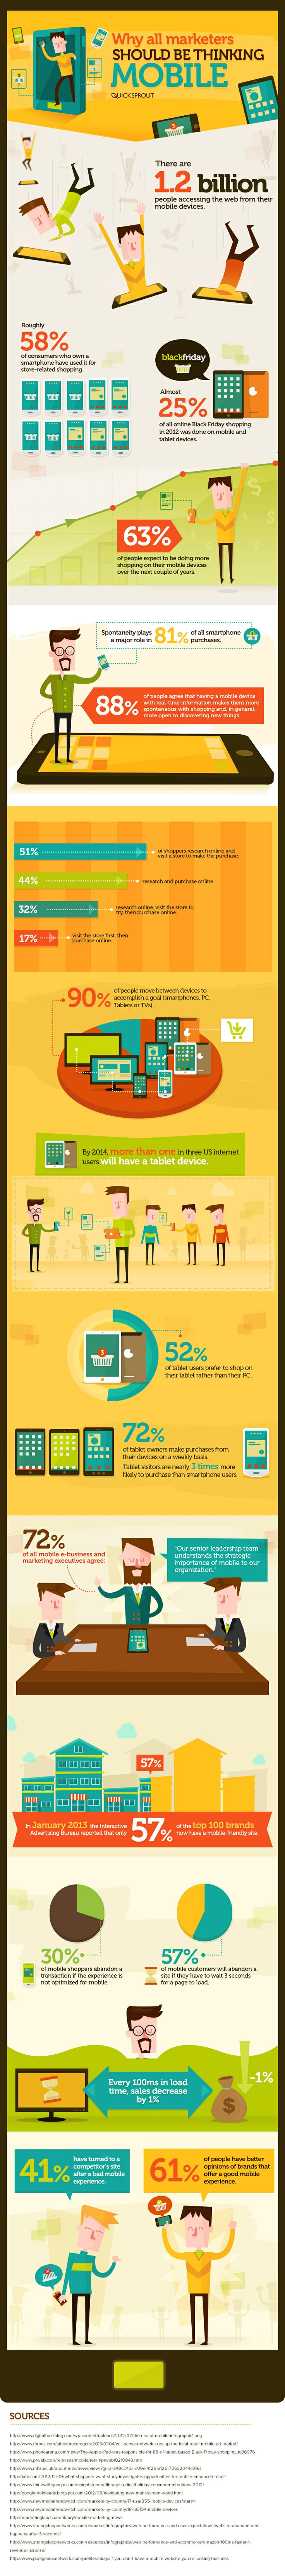 Why All Marketers Should Be Thinking Mobile [INFOGRAPHIC] #marketers#mobile